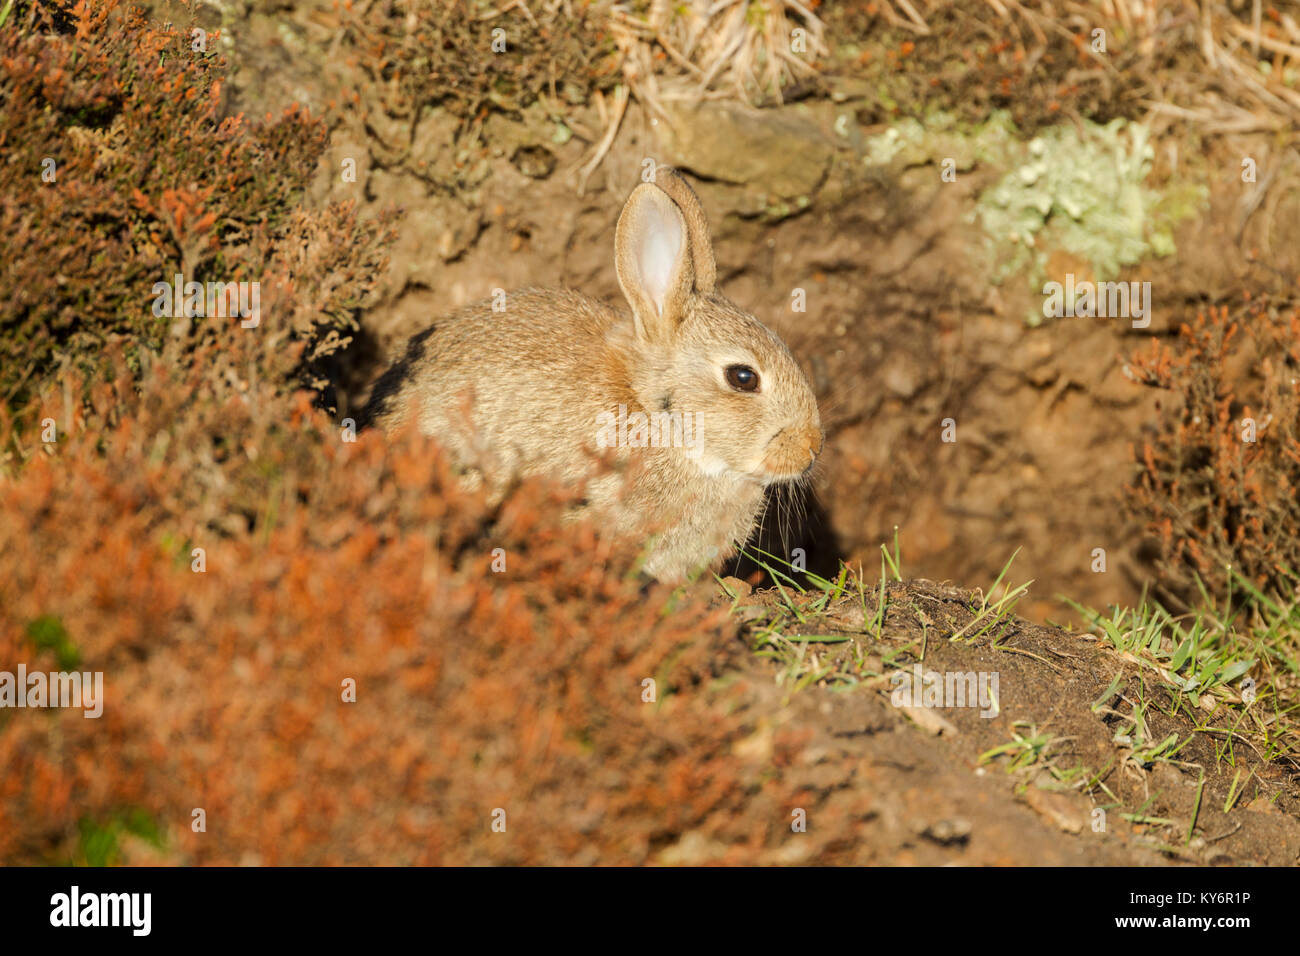 Wild rabbit, Latin name Oryctolagus cuniculus, sitting in bright light at the entrance to its warren - Stock Image